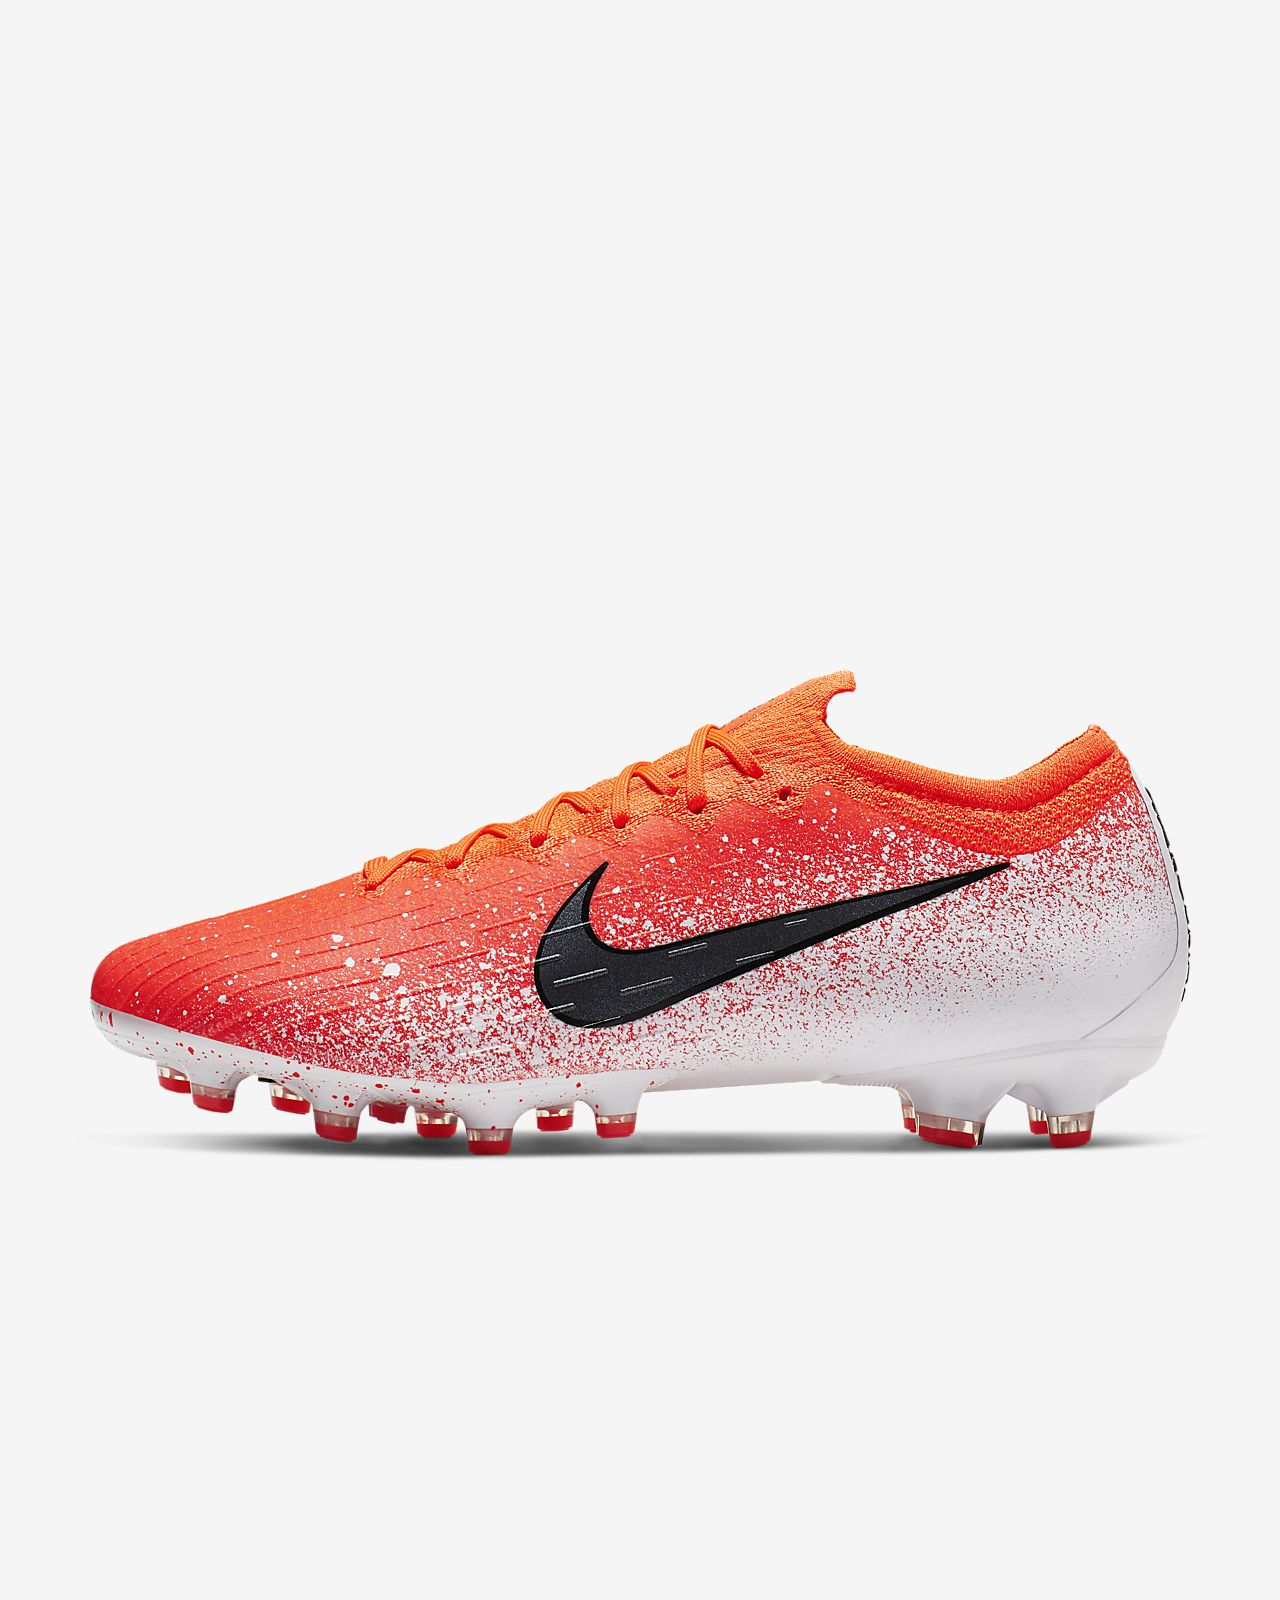 Nike Mercurial Vapor 360 Elite AG-PRO Artificial-Grass Football Boot